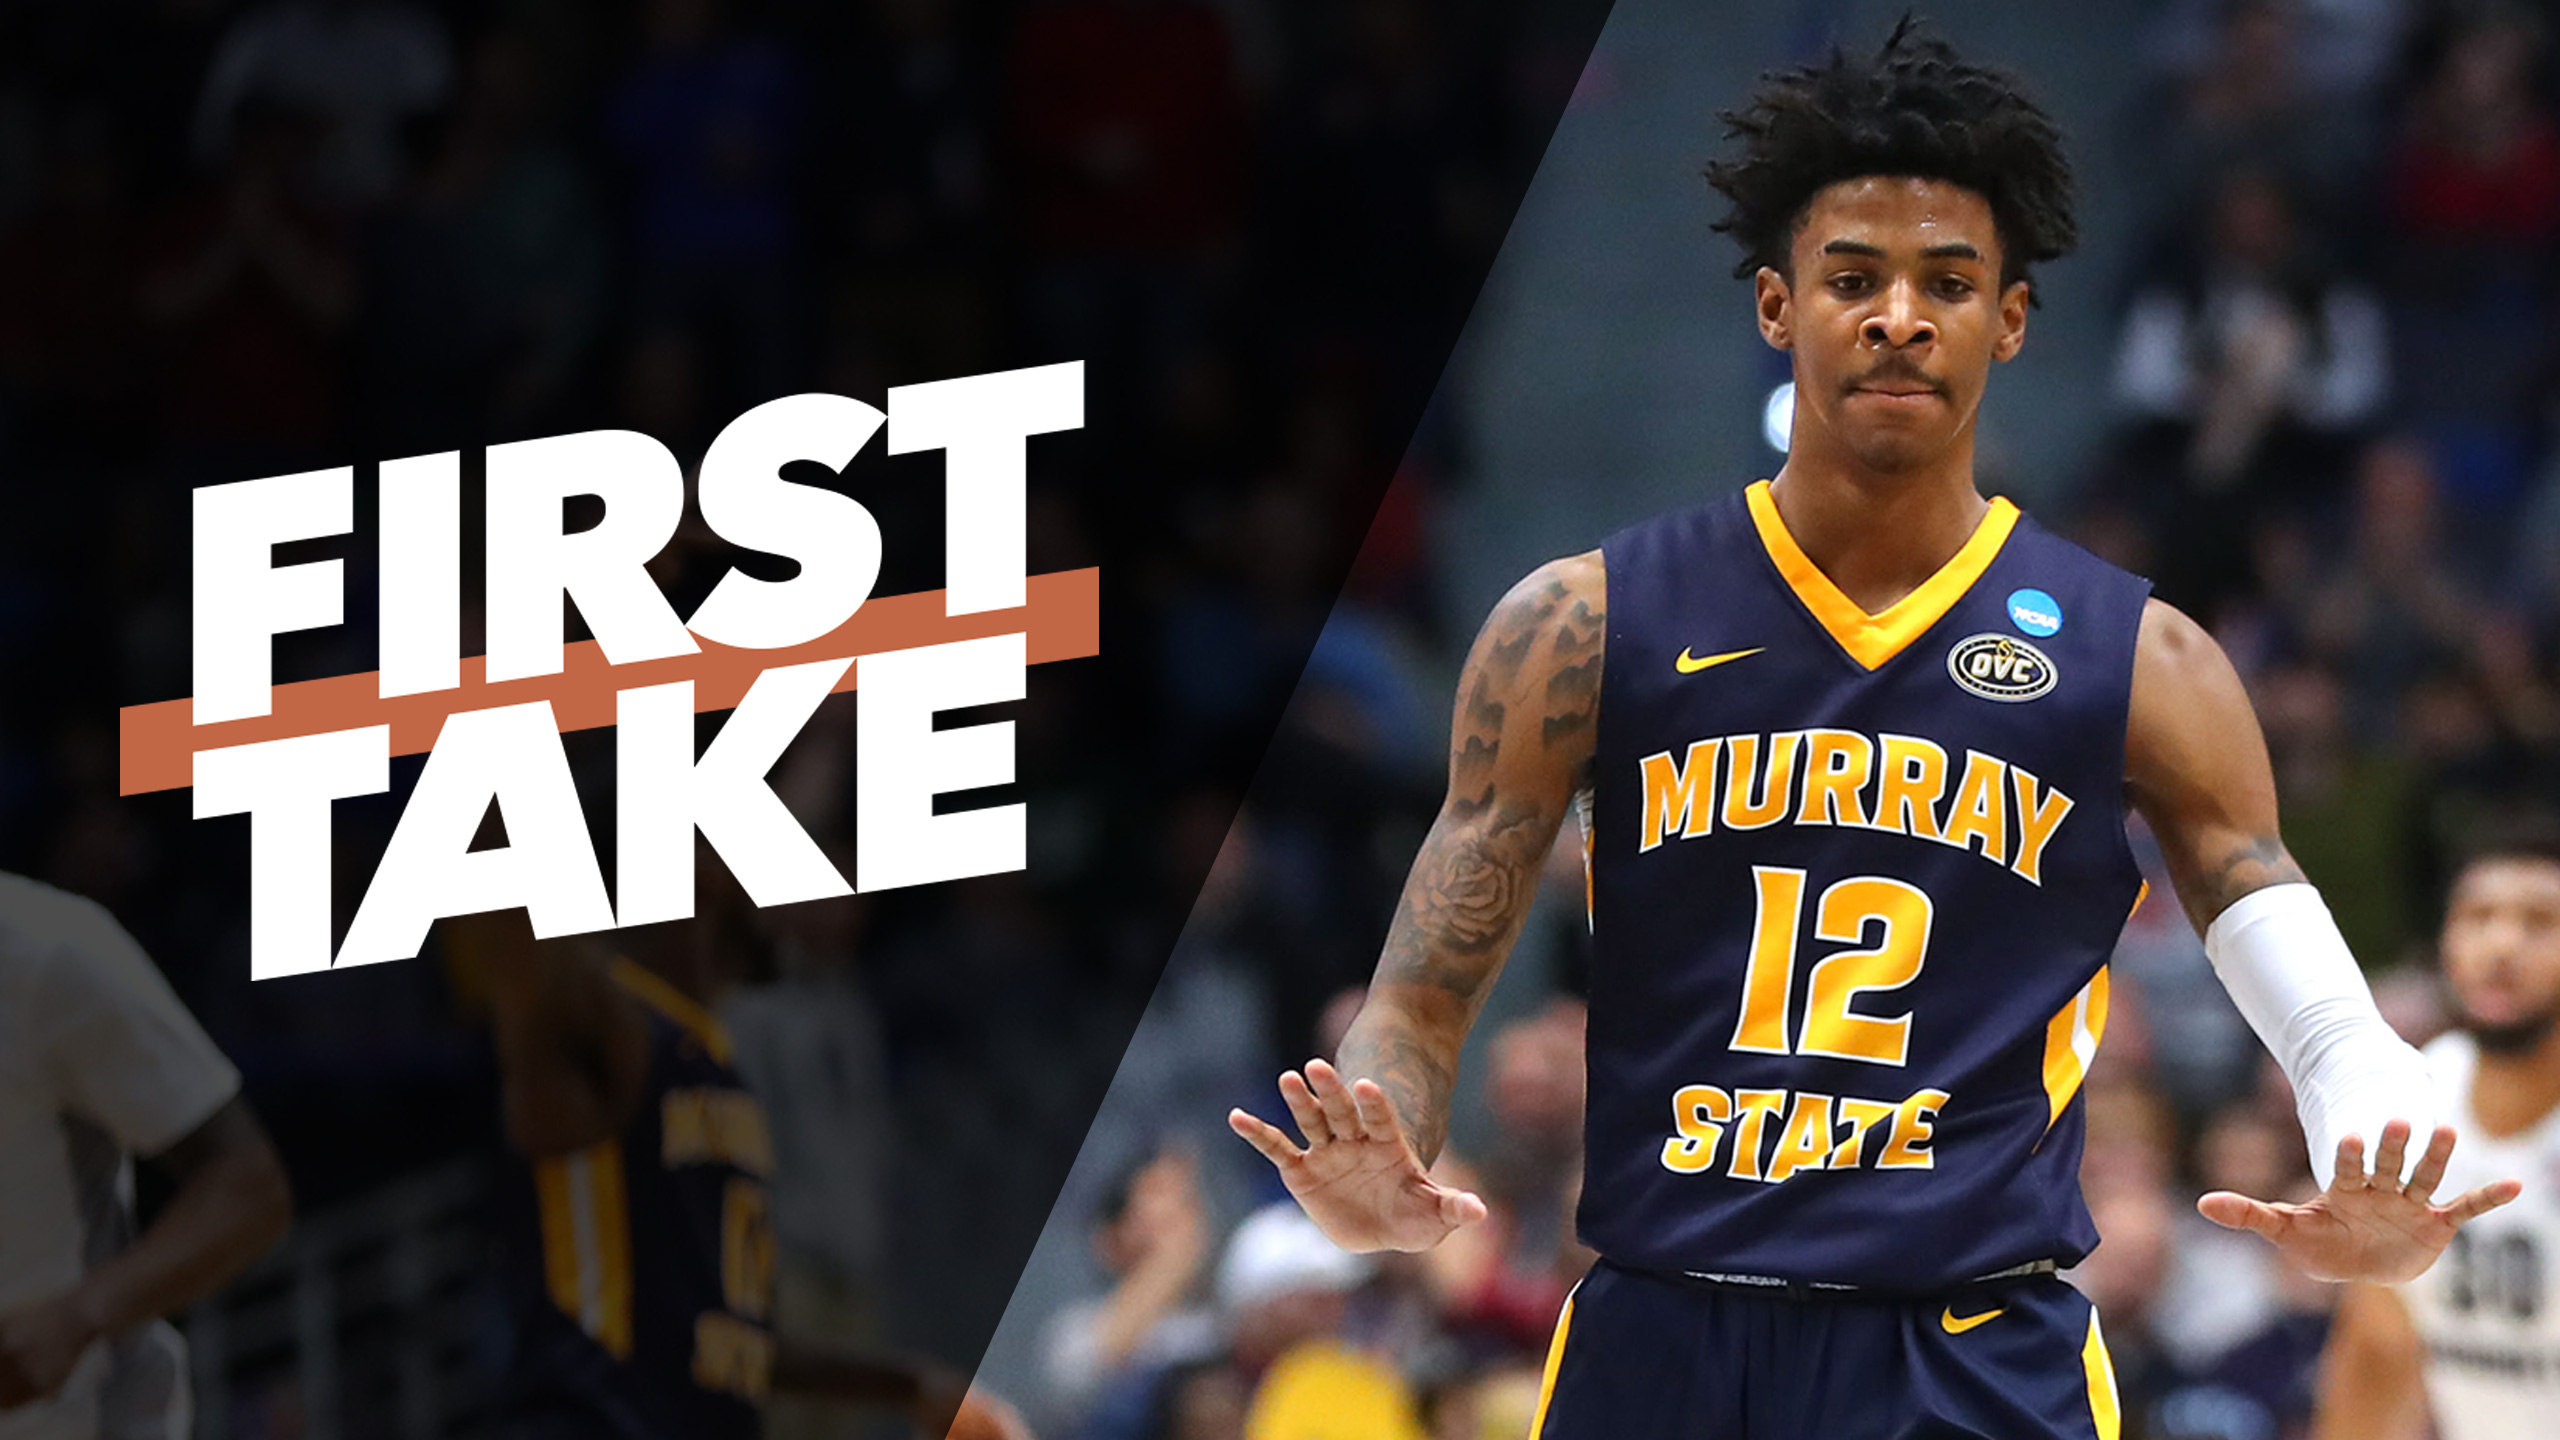 Fri, 3/22 - First Take Presented by U.S. Marines